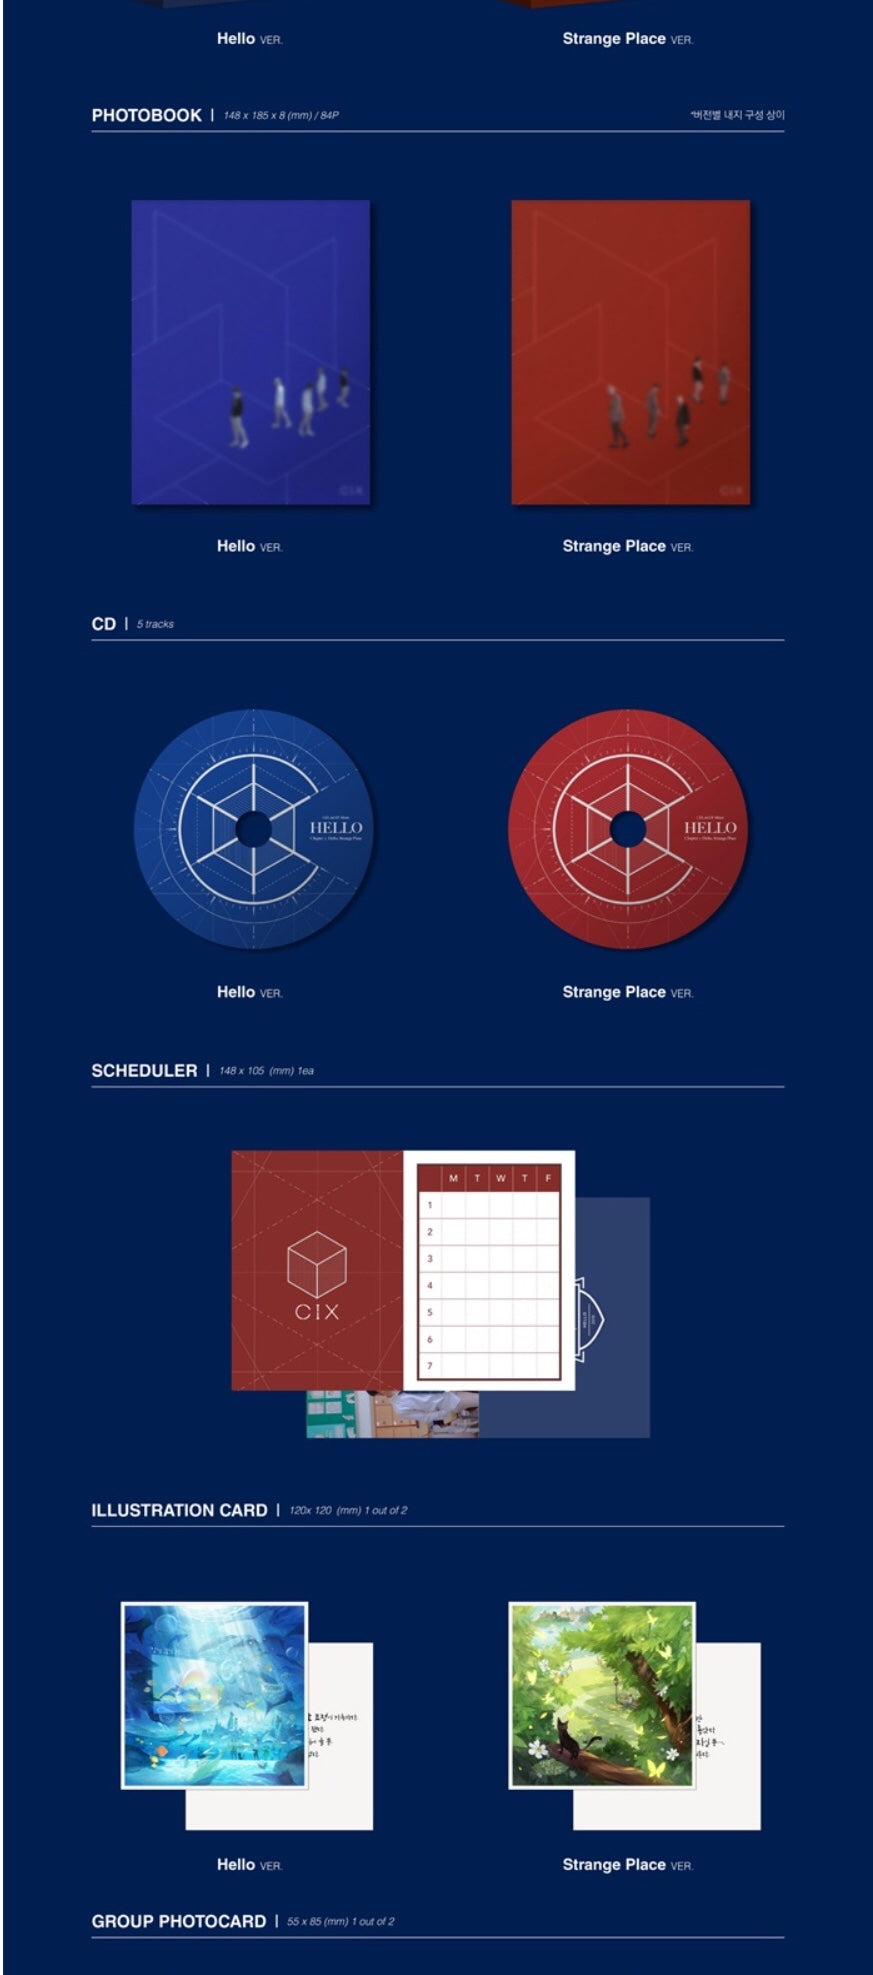 CIX - Hello Chapter 2: Hello, Strange Place – Pre–order